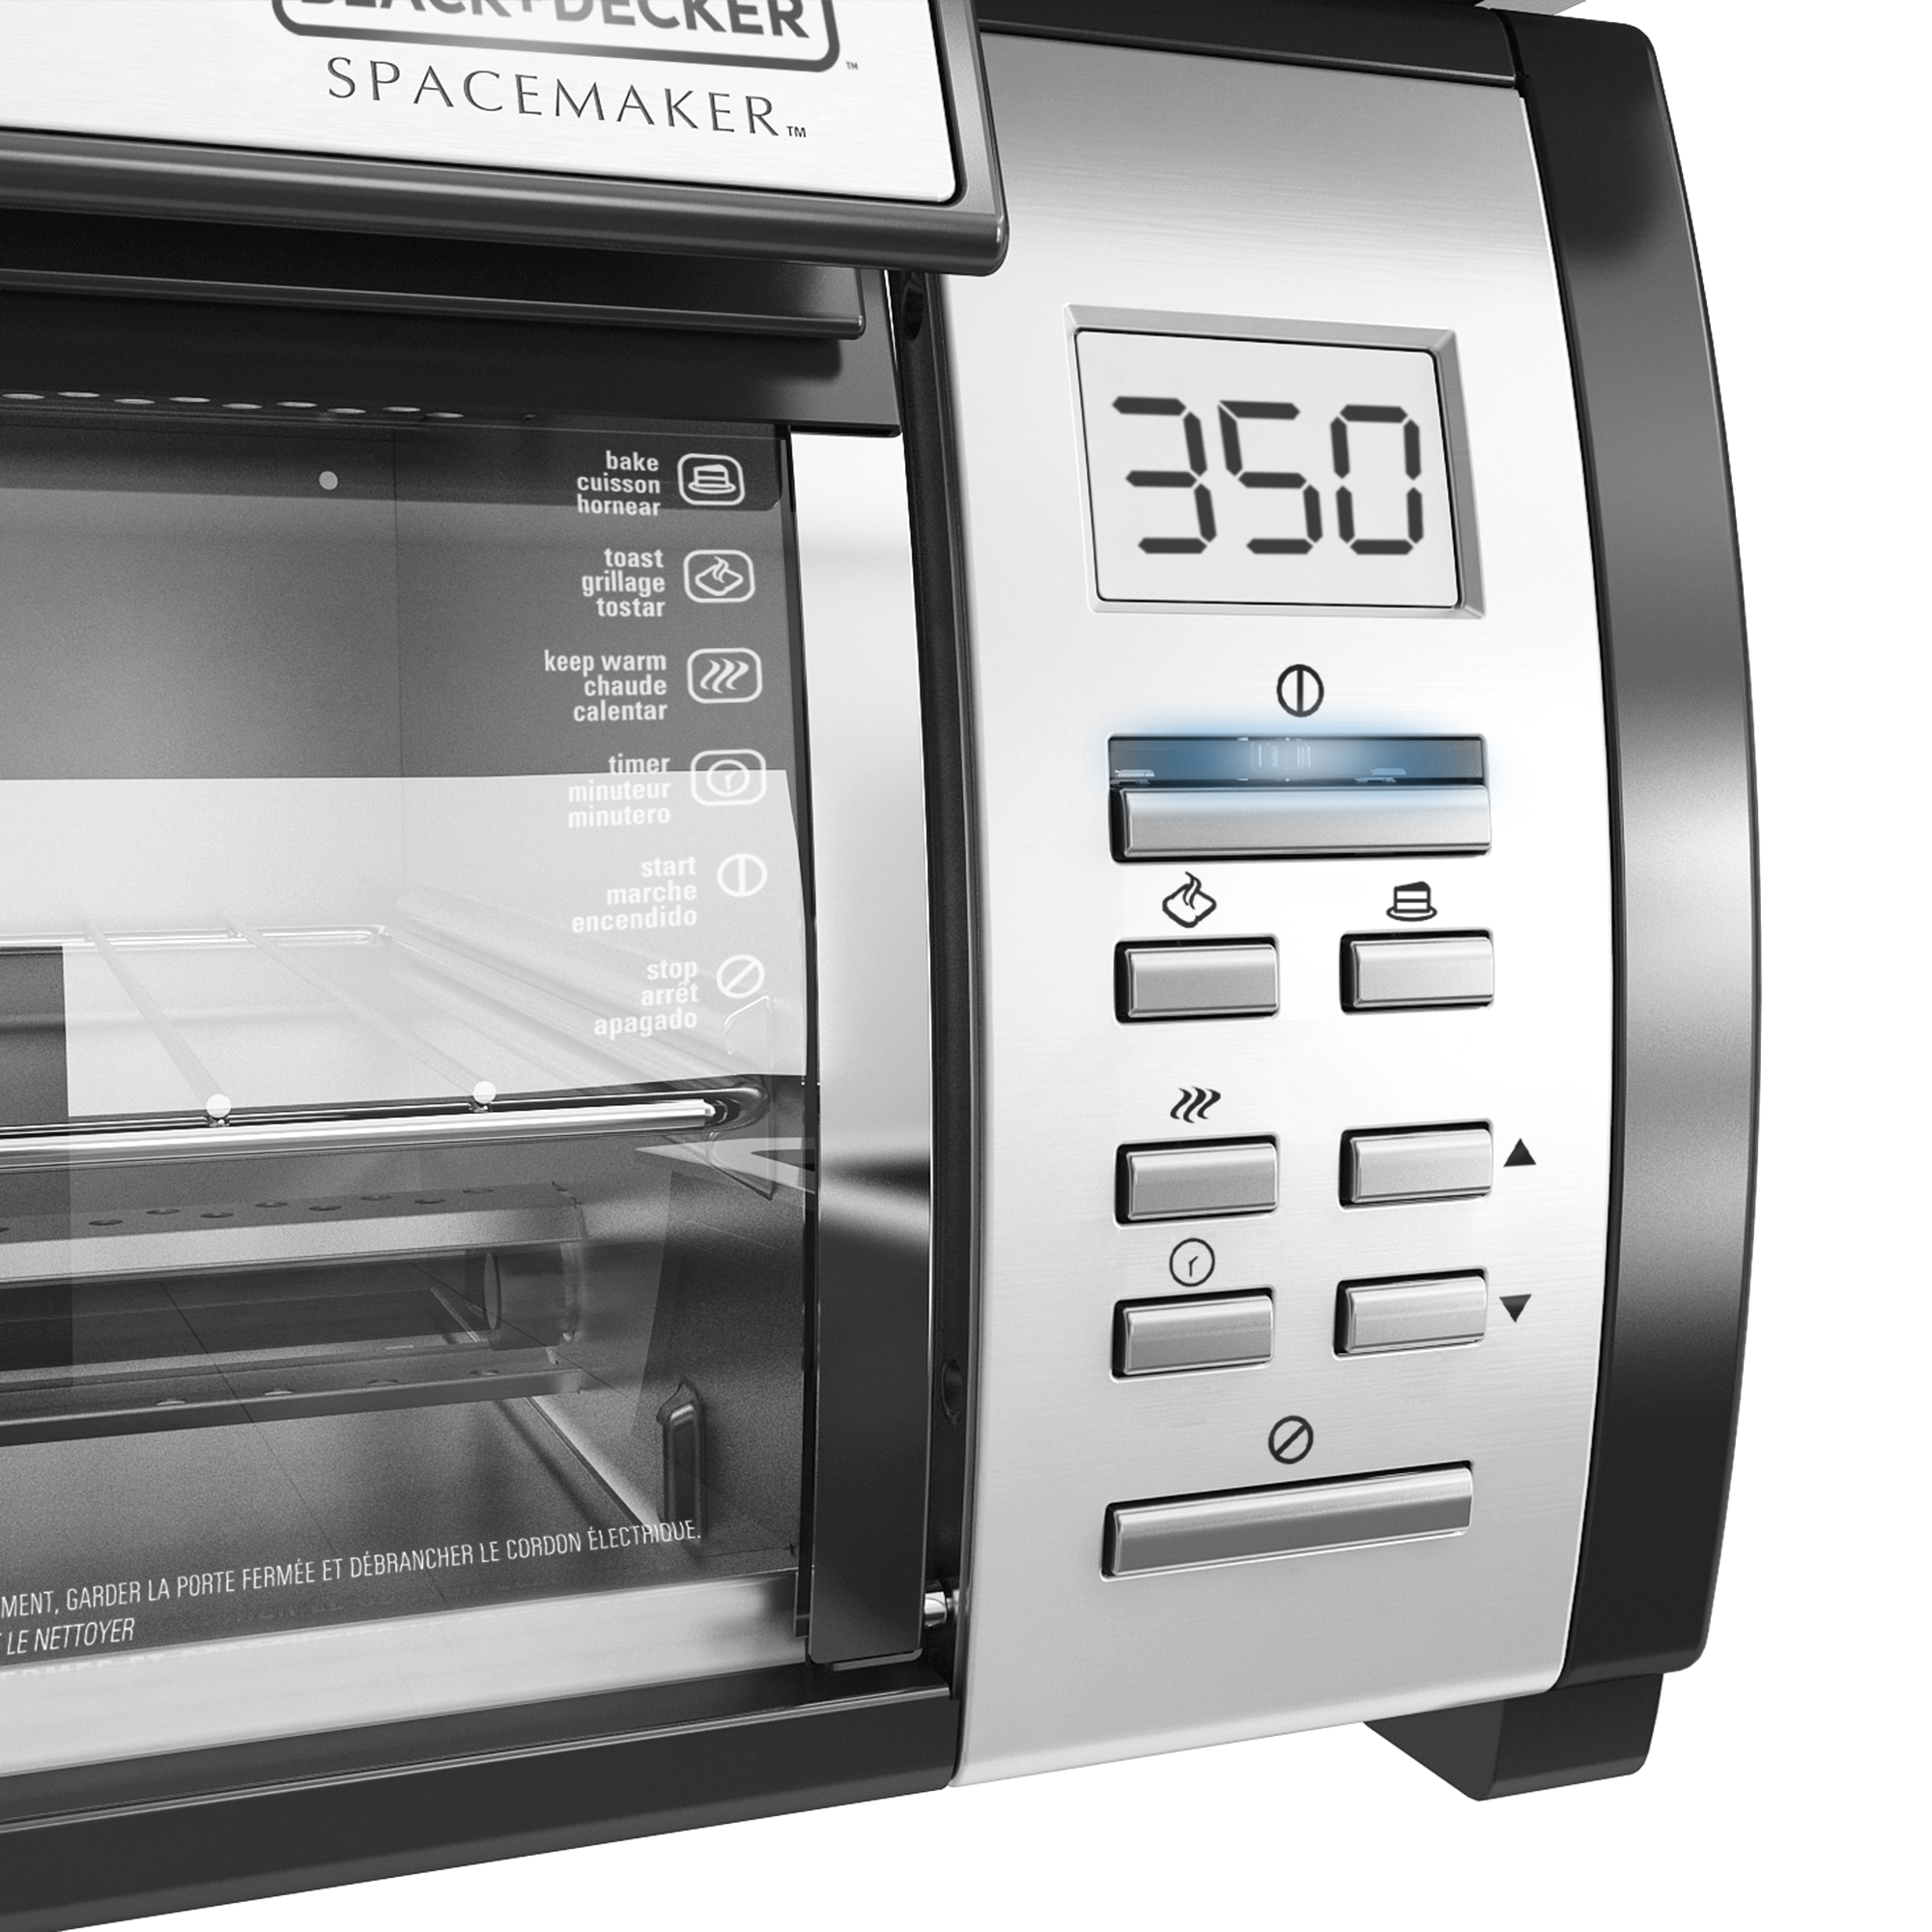 BLACK+DECKER SpaceMaker™ Toaster Oven | TROS1000D | BLACK + DECKER